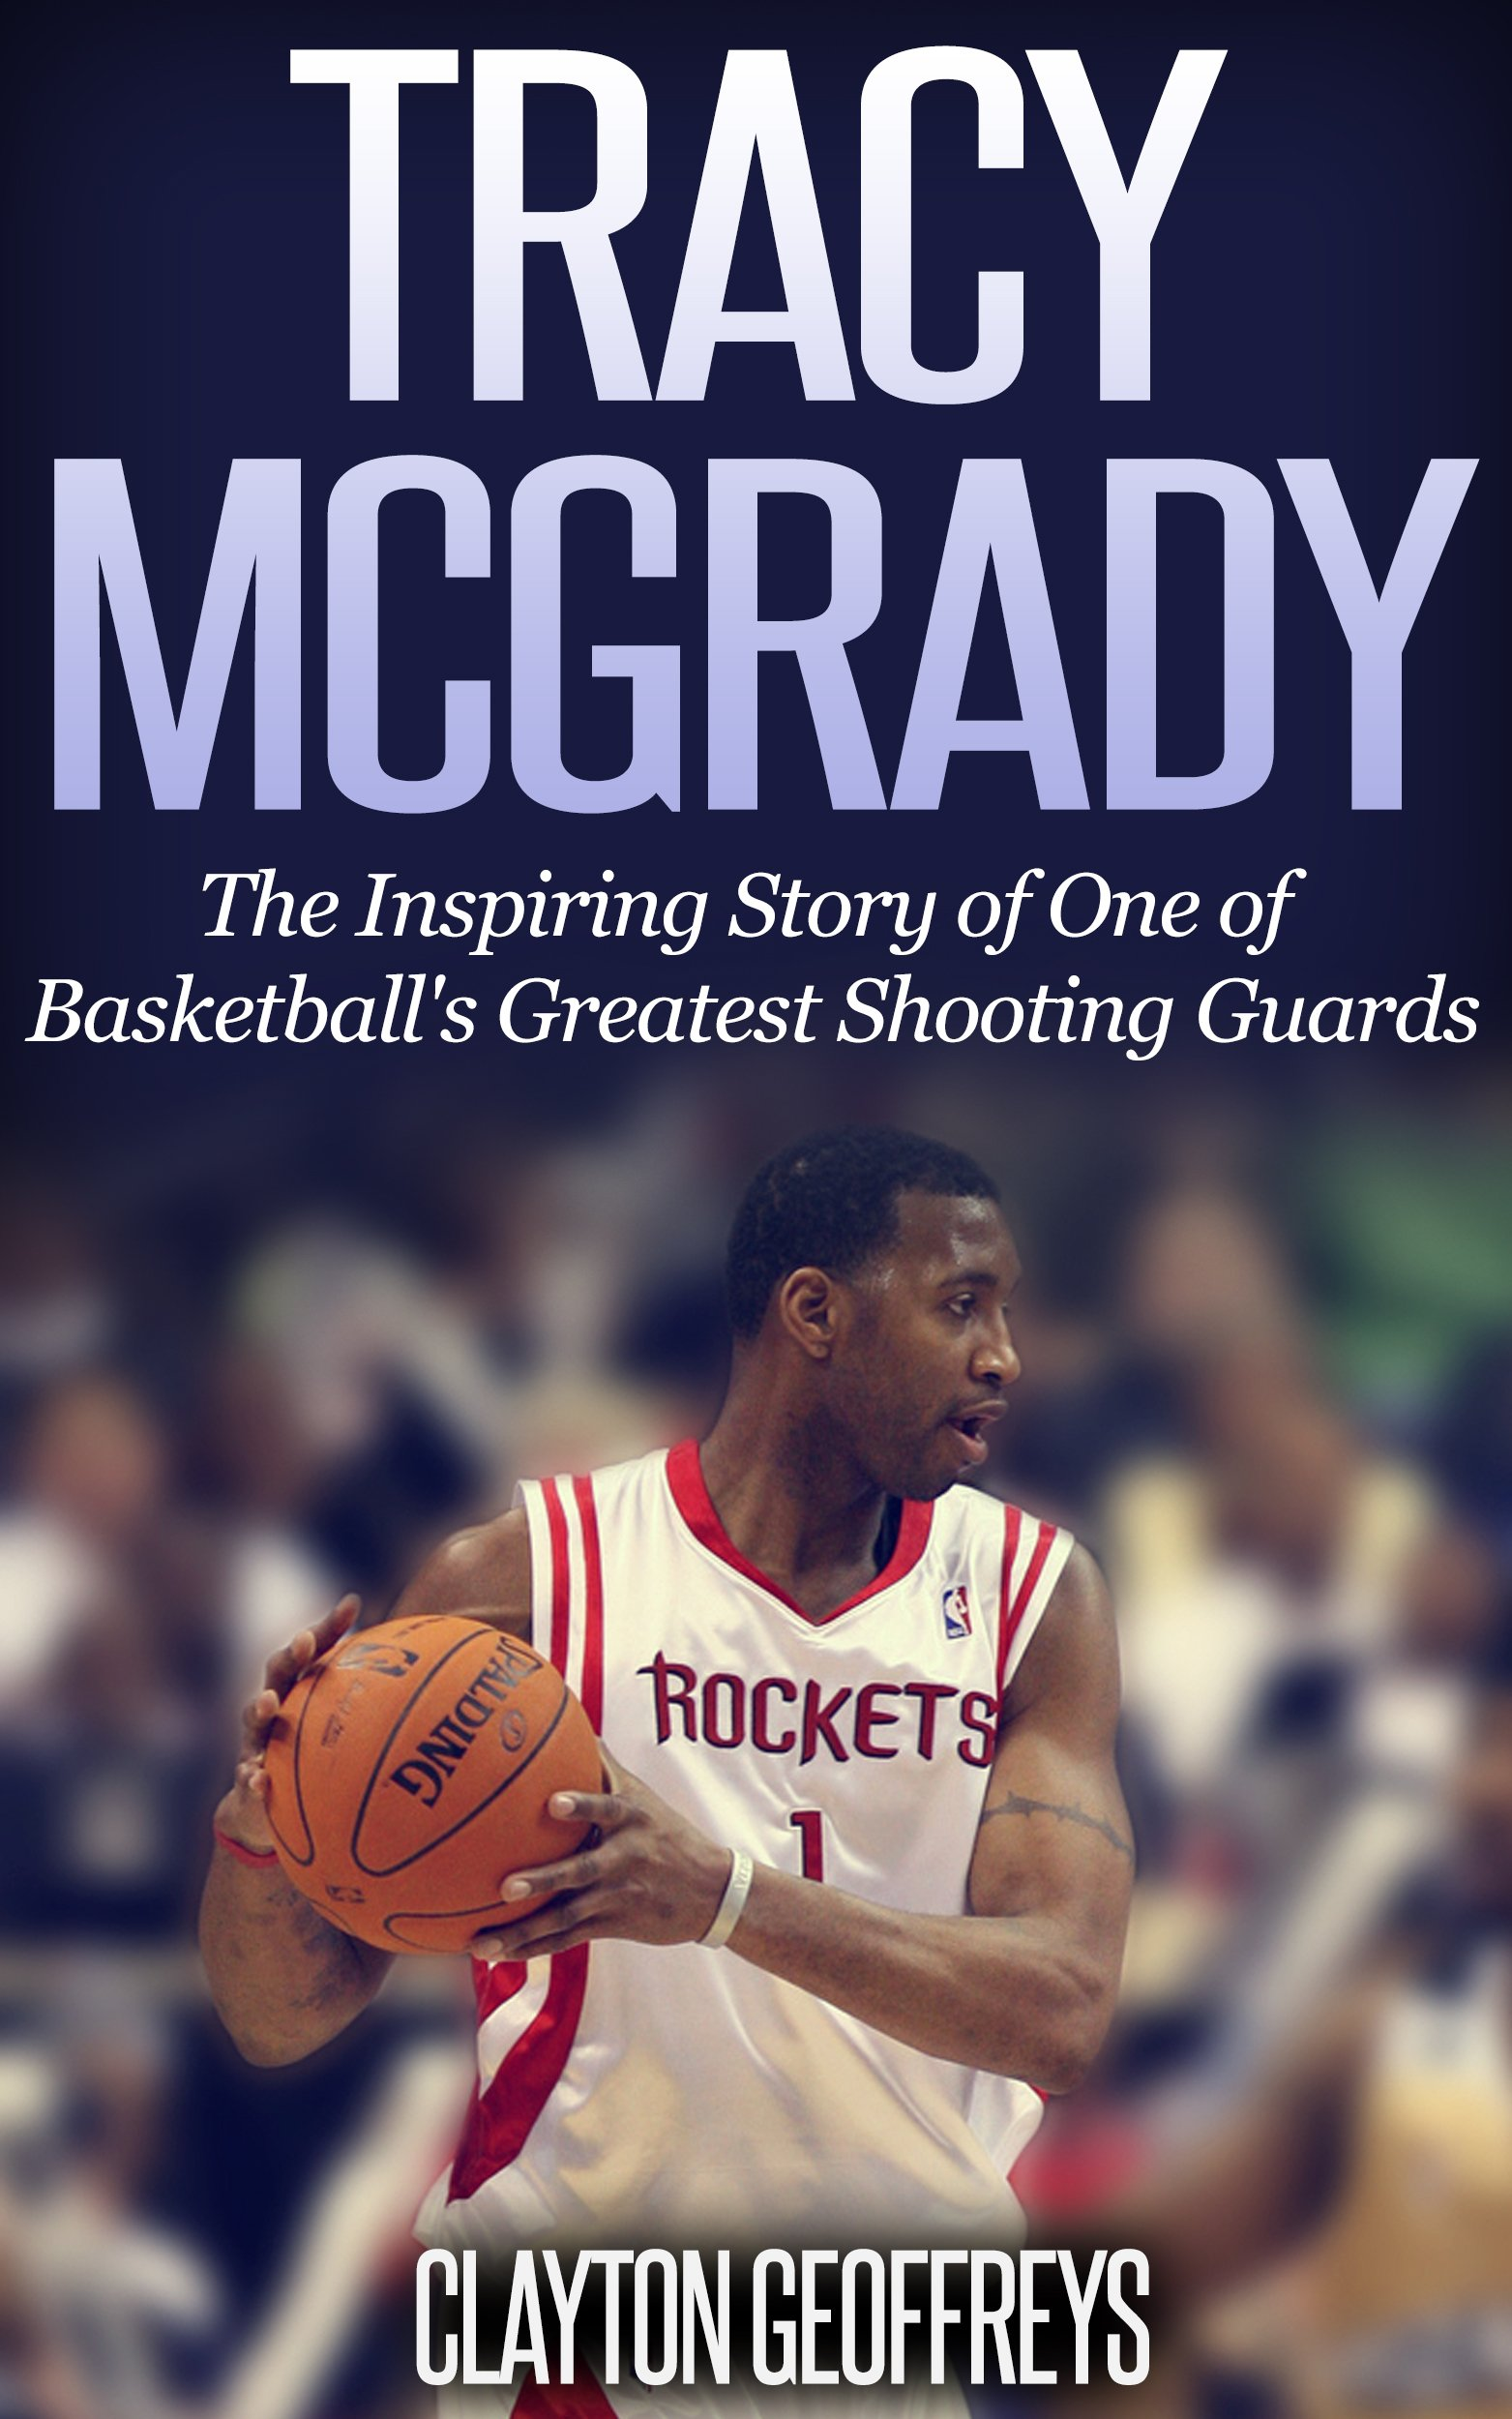 Tracy McGrady: The Inspiring Story of One of Basketball's Greatest Shooting Guards (Basketball Biography Books) por Clayton Geoffreys